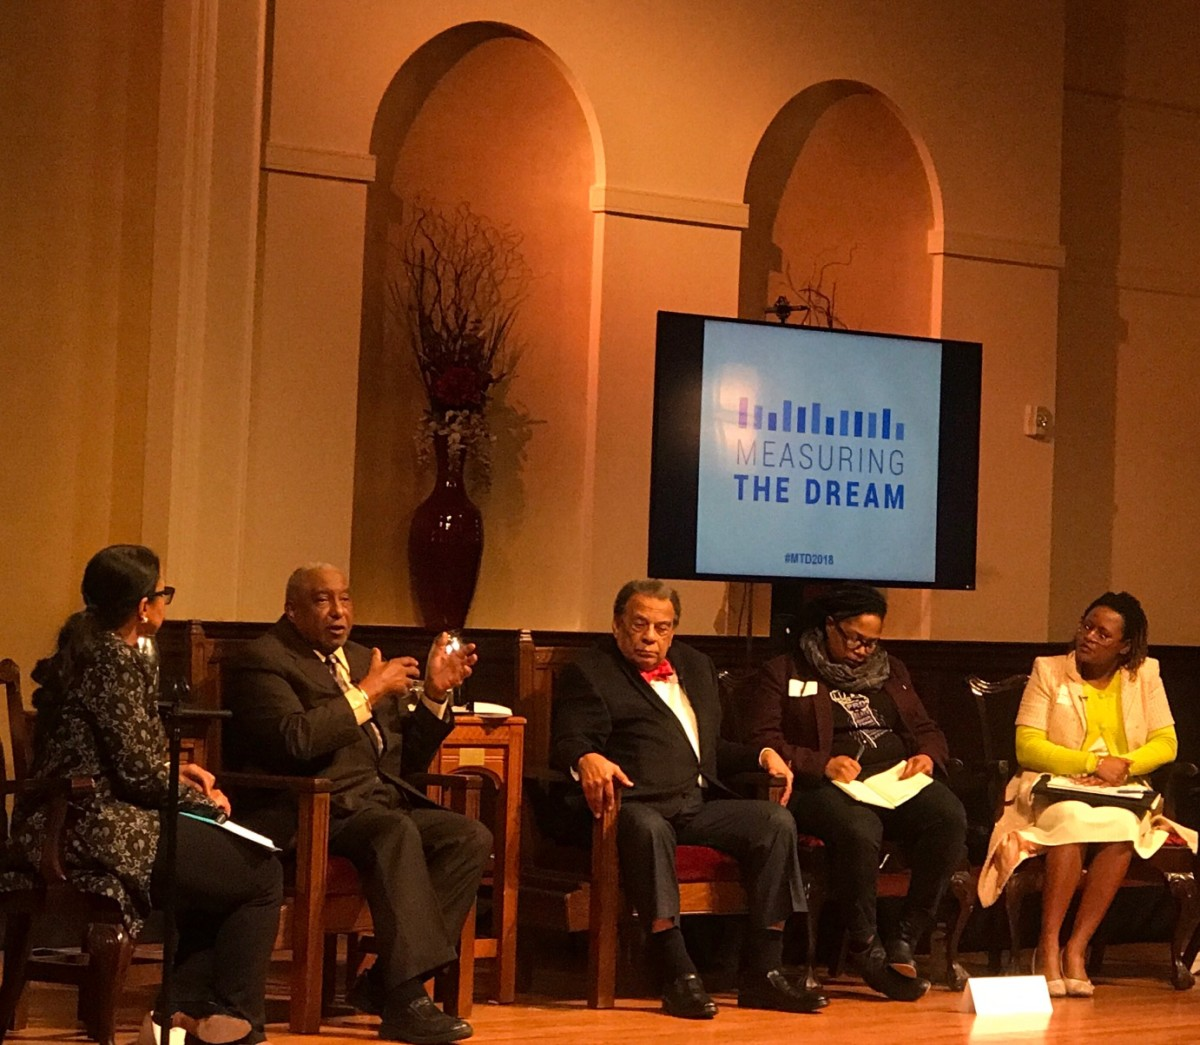 Andrea Young (L-R), Bernard Lafayette, Andrew Young, Mary Hooks and Park Cannon at the Measuring the Dream symposium at First Congregational Church of Atlanta on Thursday night. Credit: Kelly Jordan